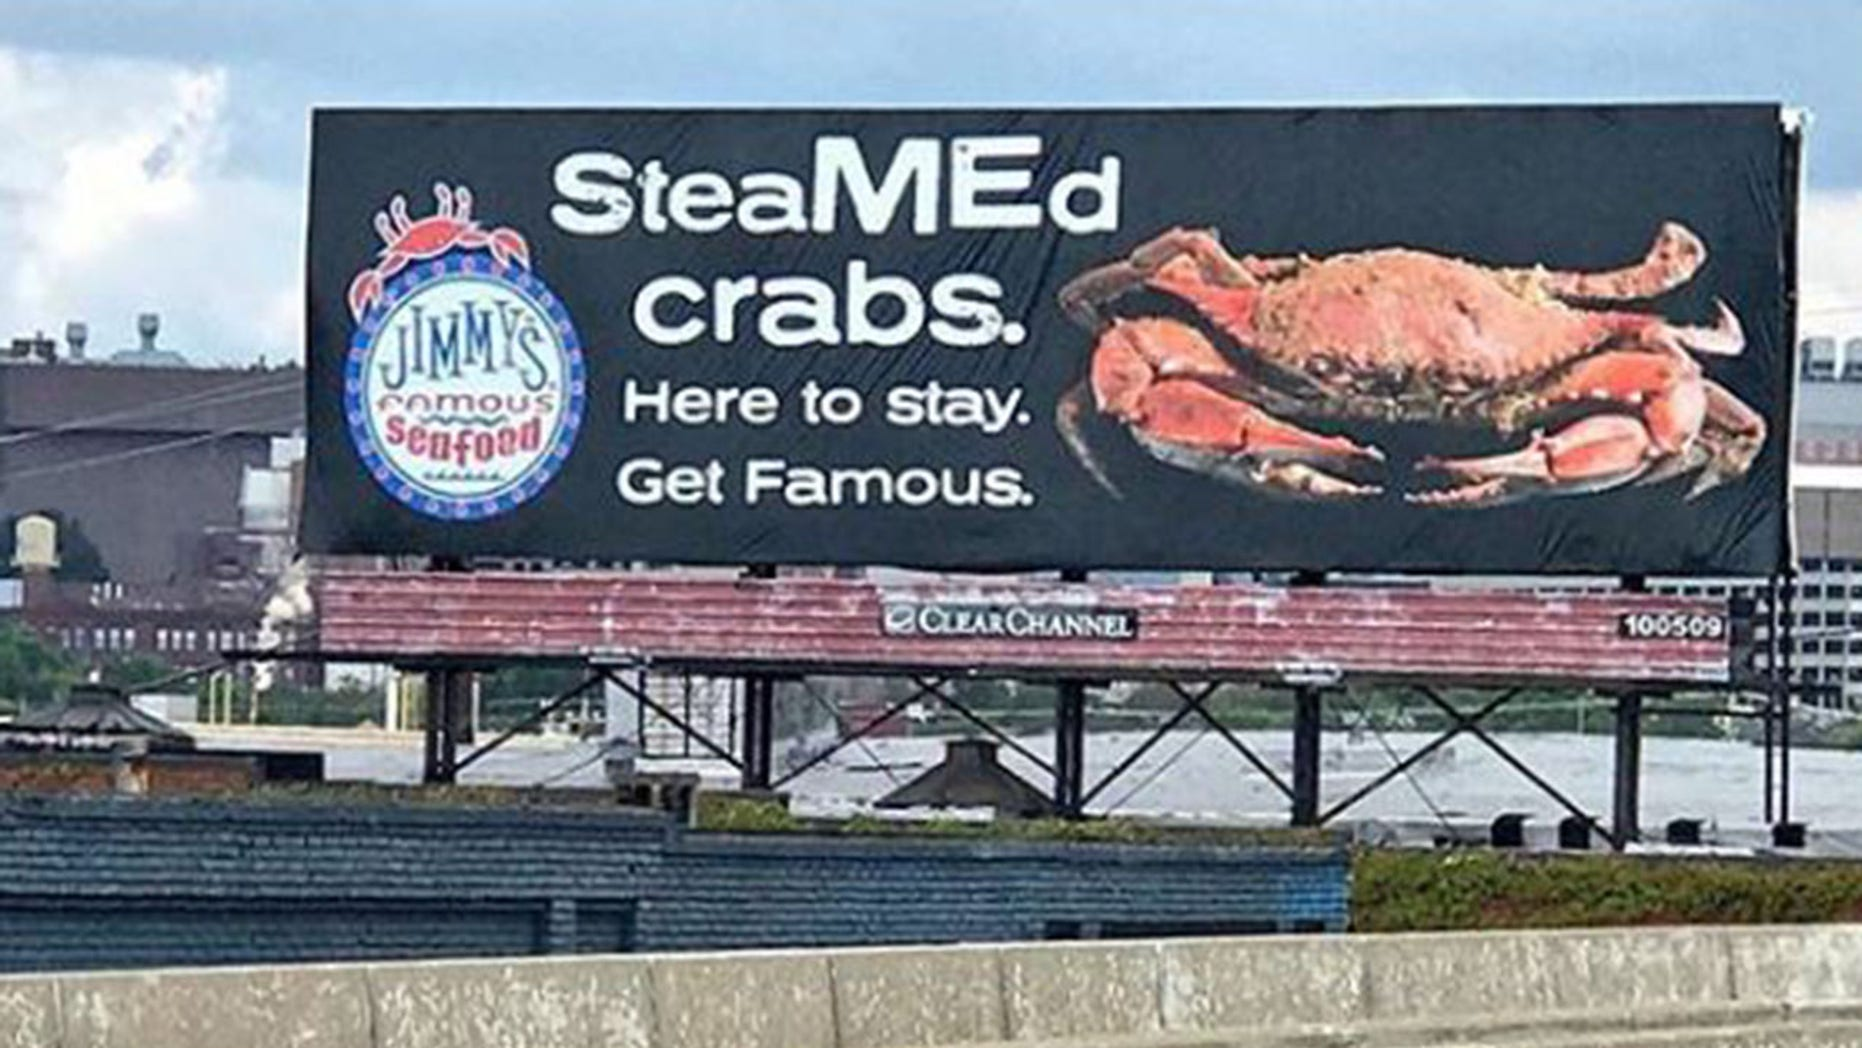 Jimmy's Famous Seafood has targeted PETA in its newest billboard.